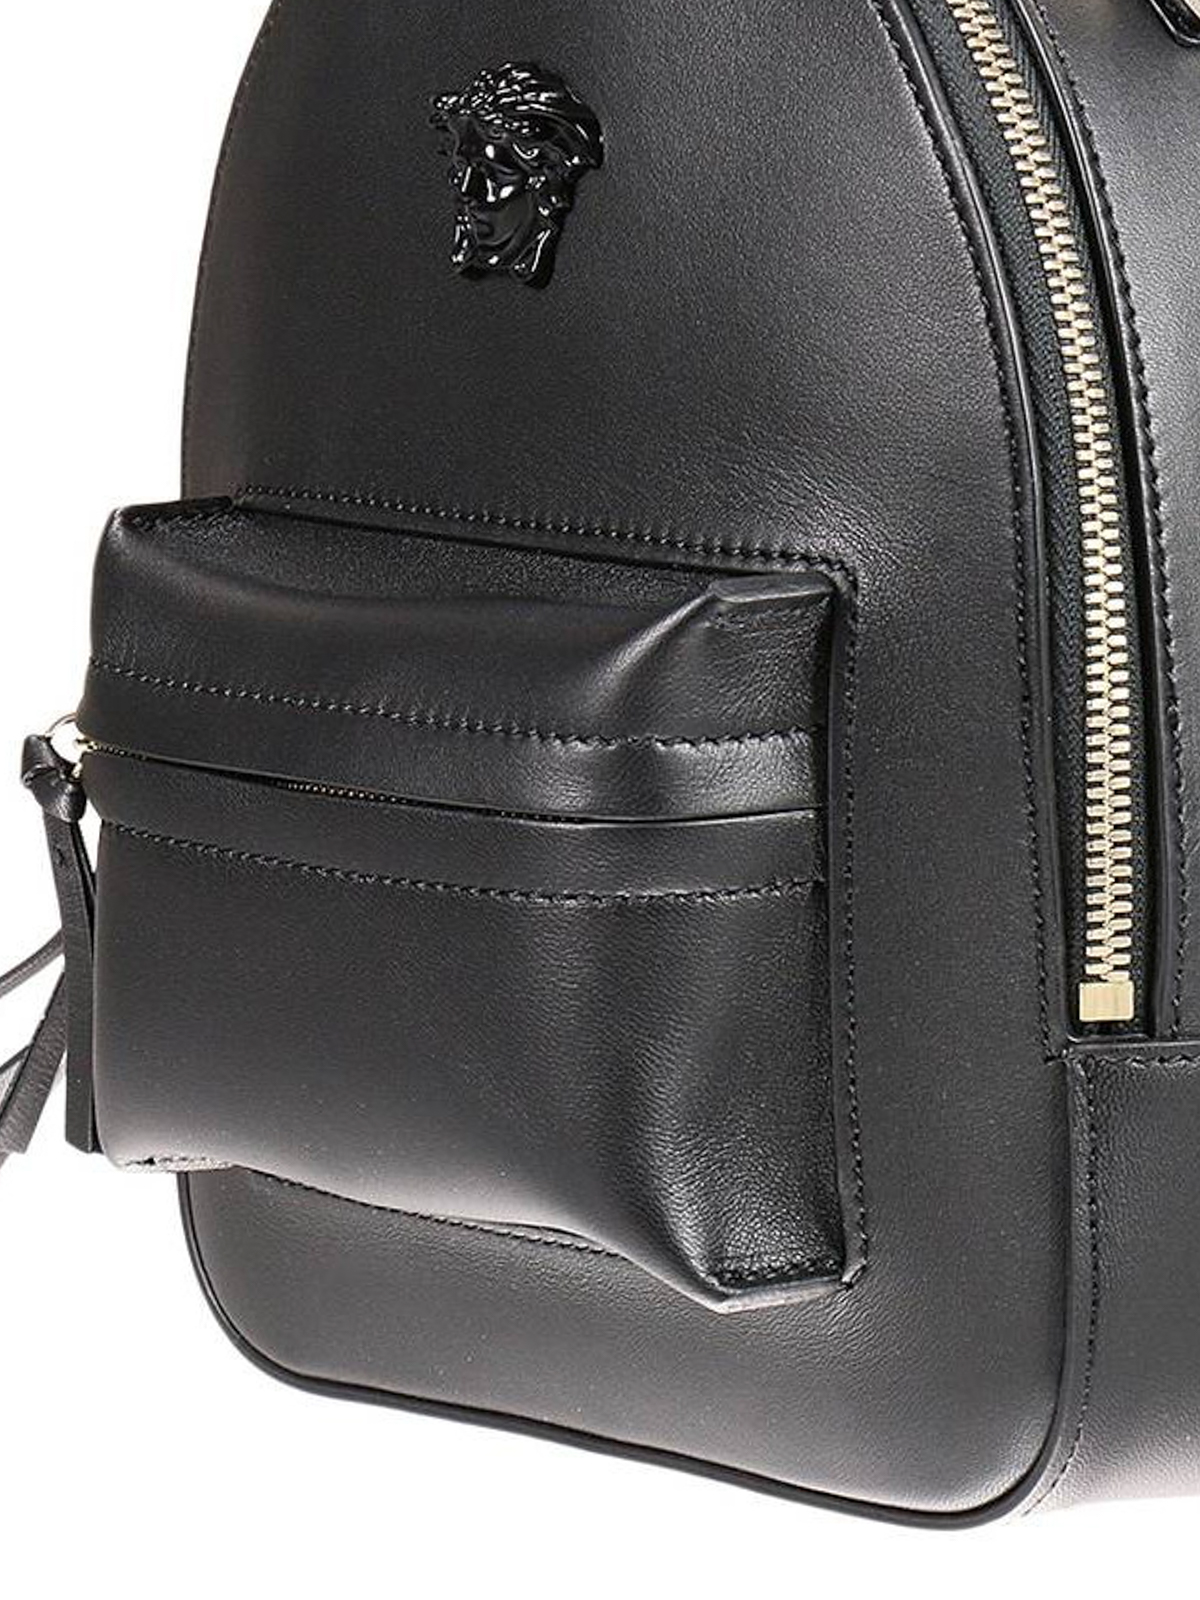 Versace - Palazzo napa leather backpack - backpacks - DBFF717 DNAPP1 ... d24ab1515c55f